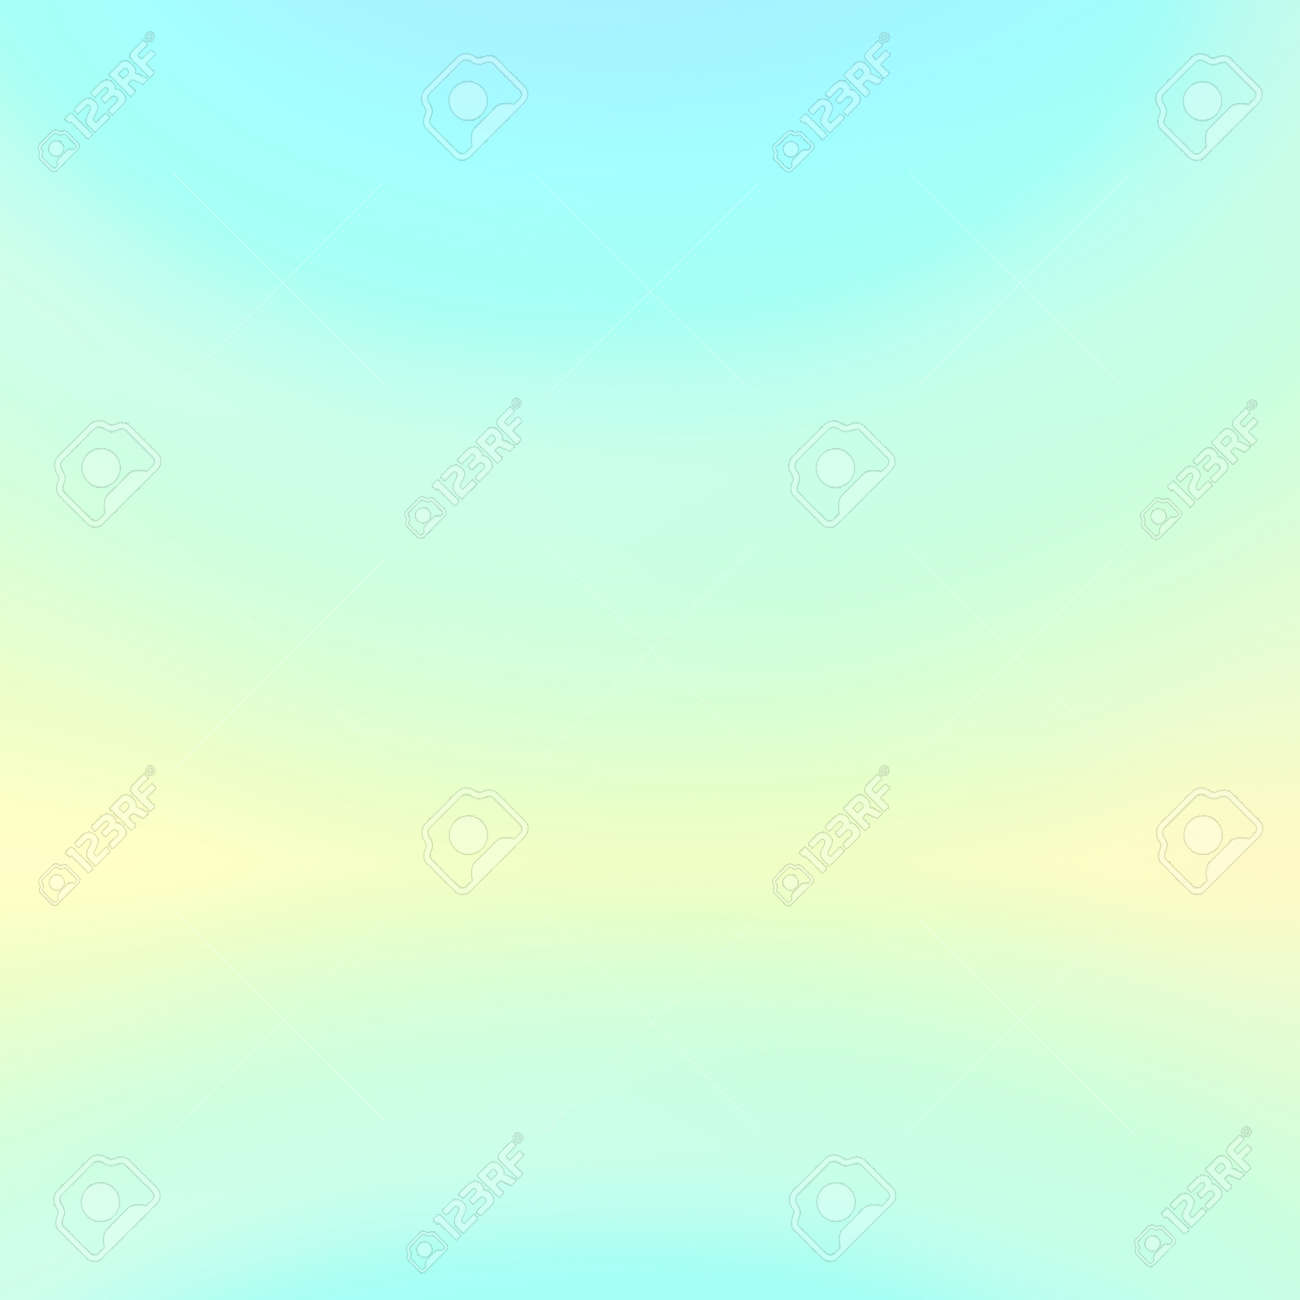 Light Blue Background, Defocused Abstract Design,pattern And ... for Light Background Patterns For Websites  113cpg